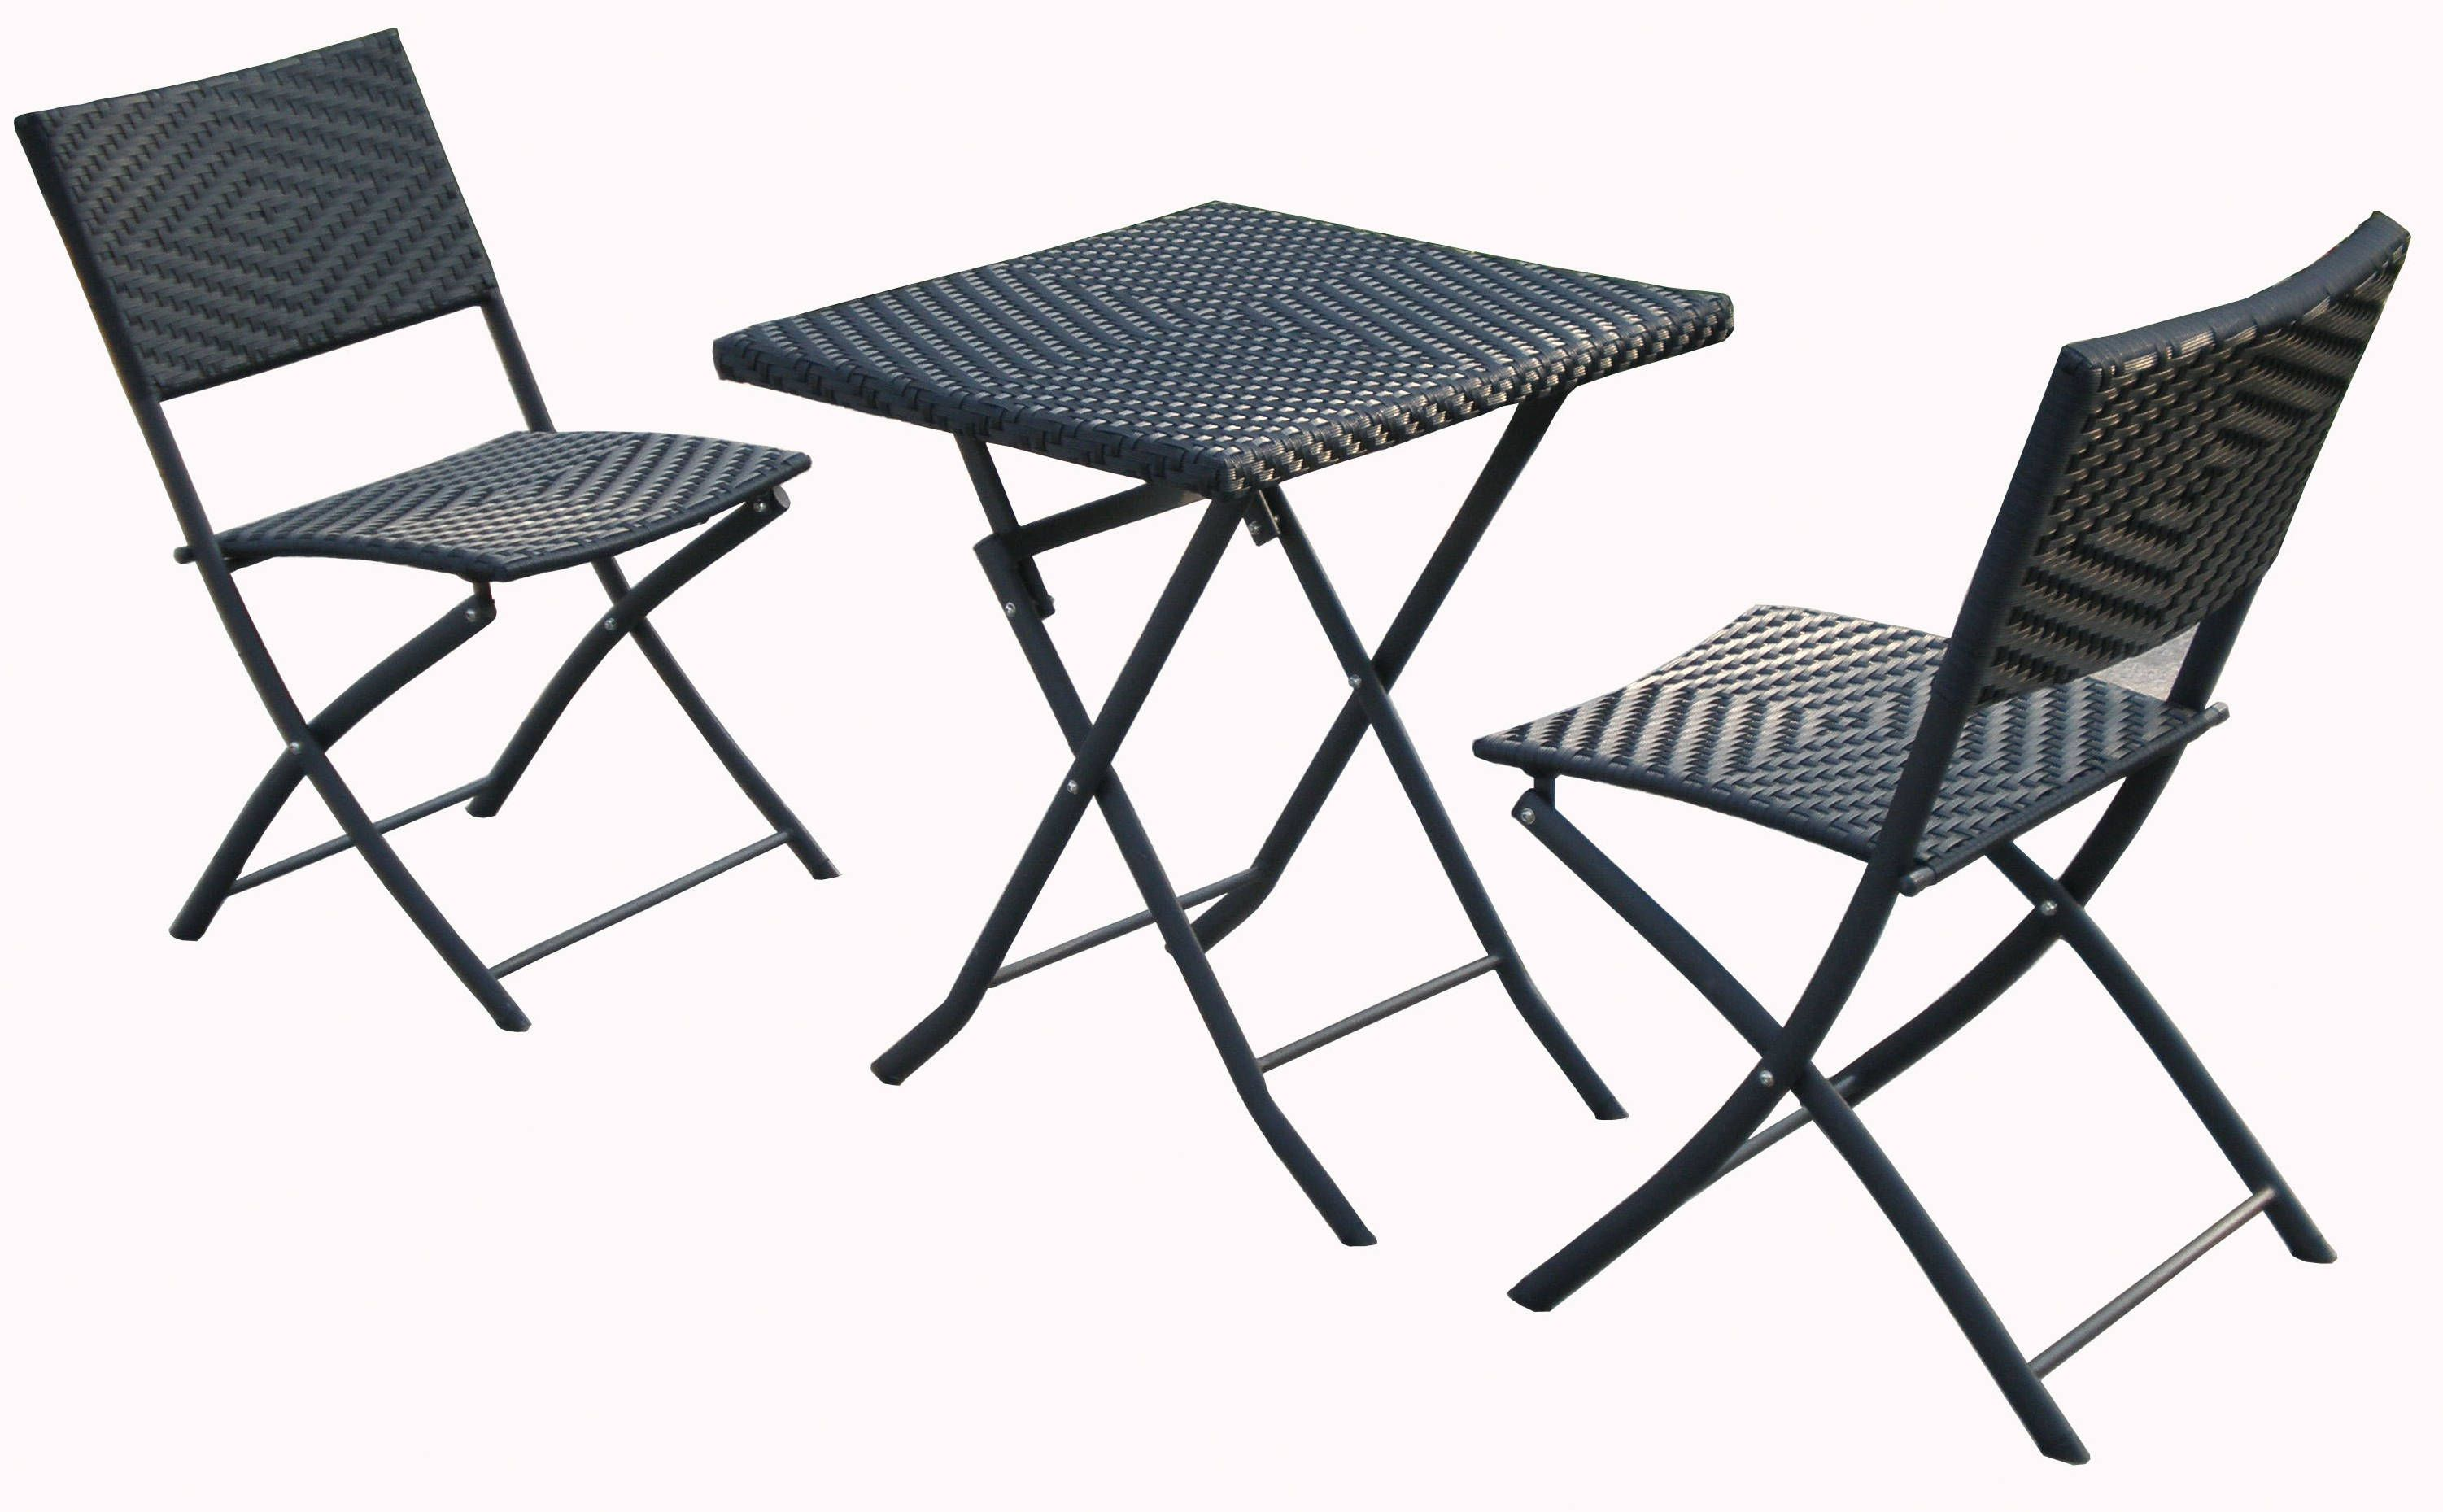 Vente de mobilier de jardin salon de jardin plancha gaz for Table et chaise en osier